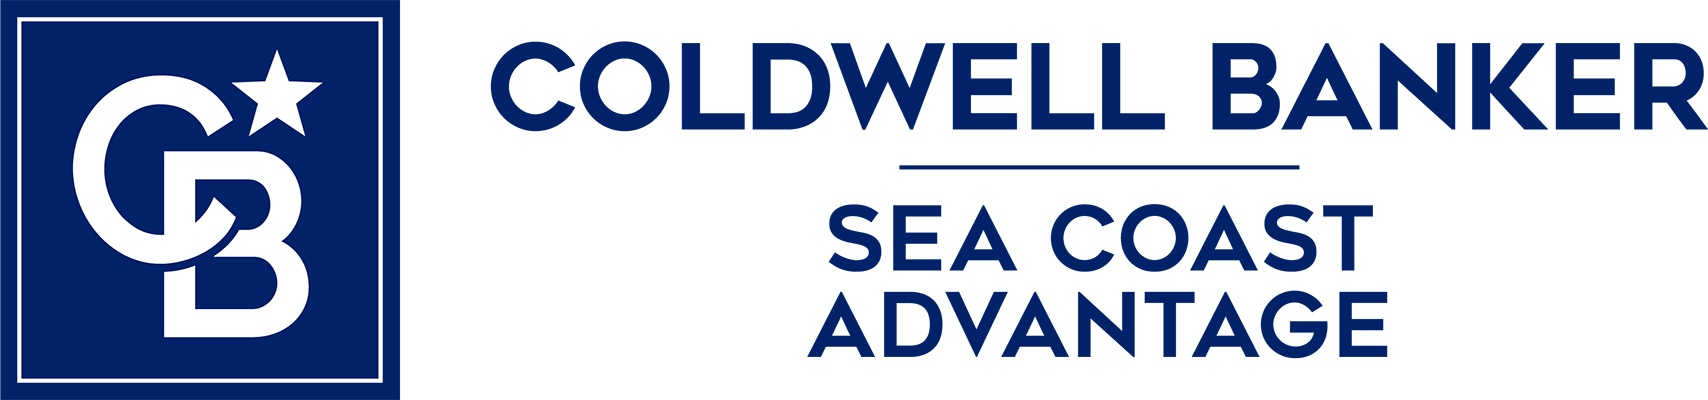 Beth Davis - Coldwell Banker Sea Coast Advantage Realty